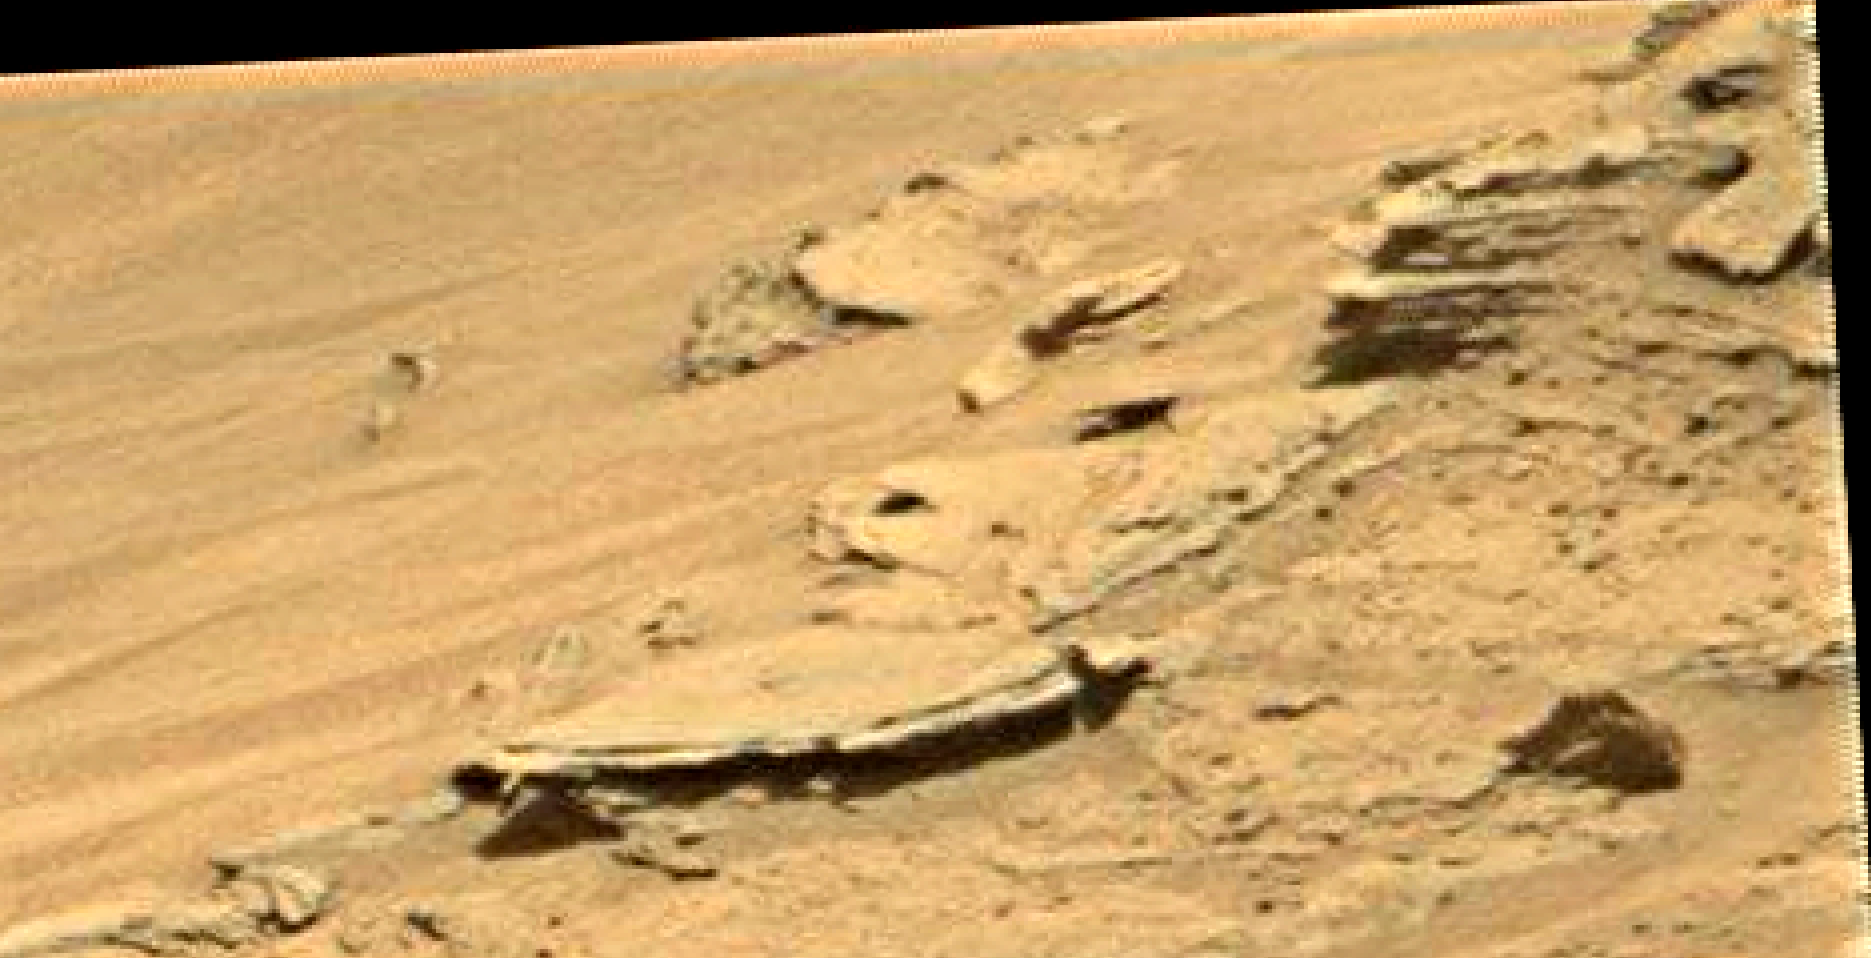 mars sol 1346 anomaly-artifacts 16 was life on mars